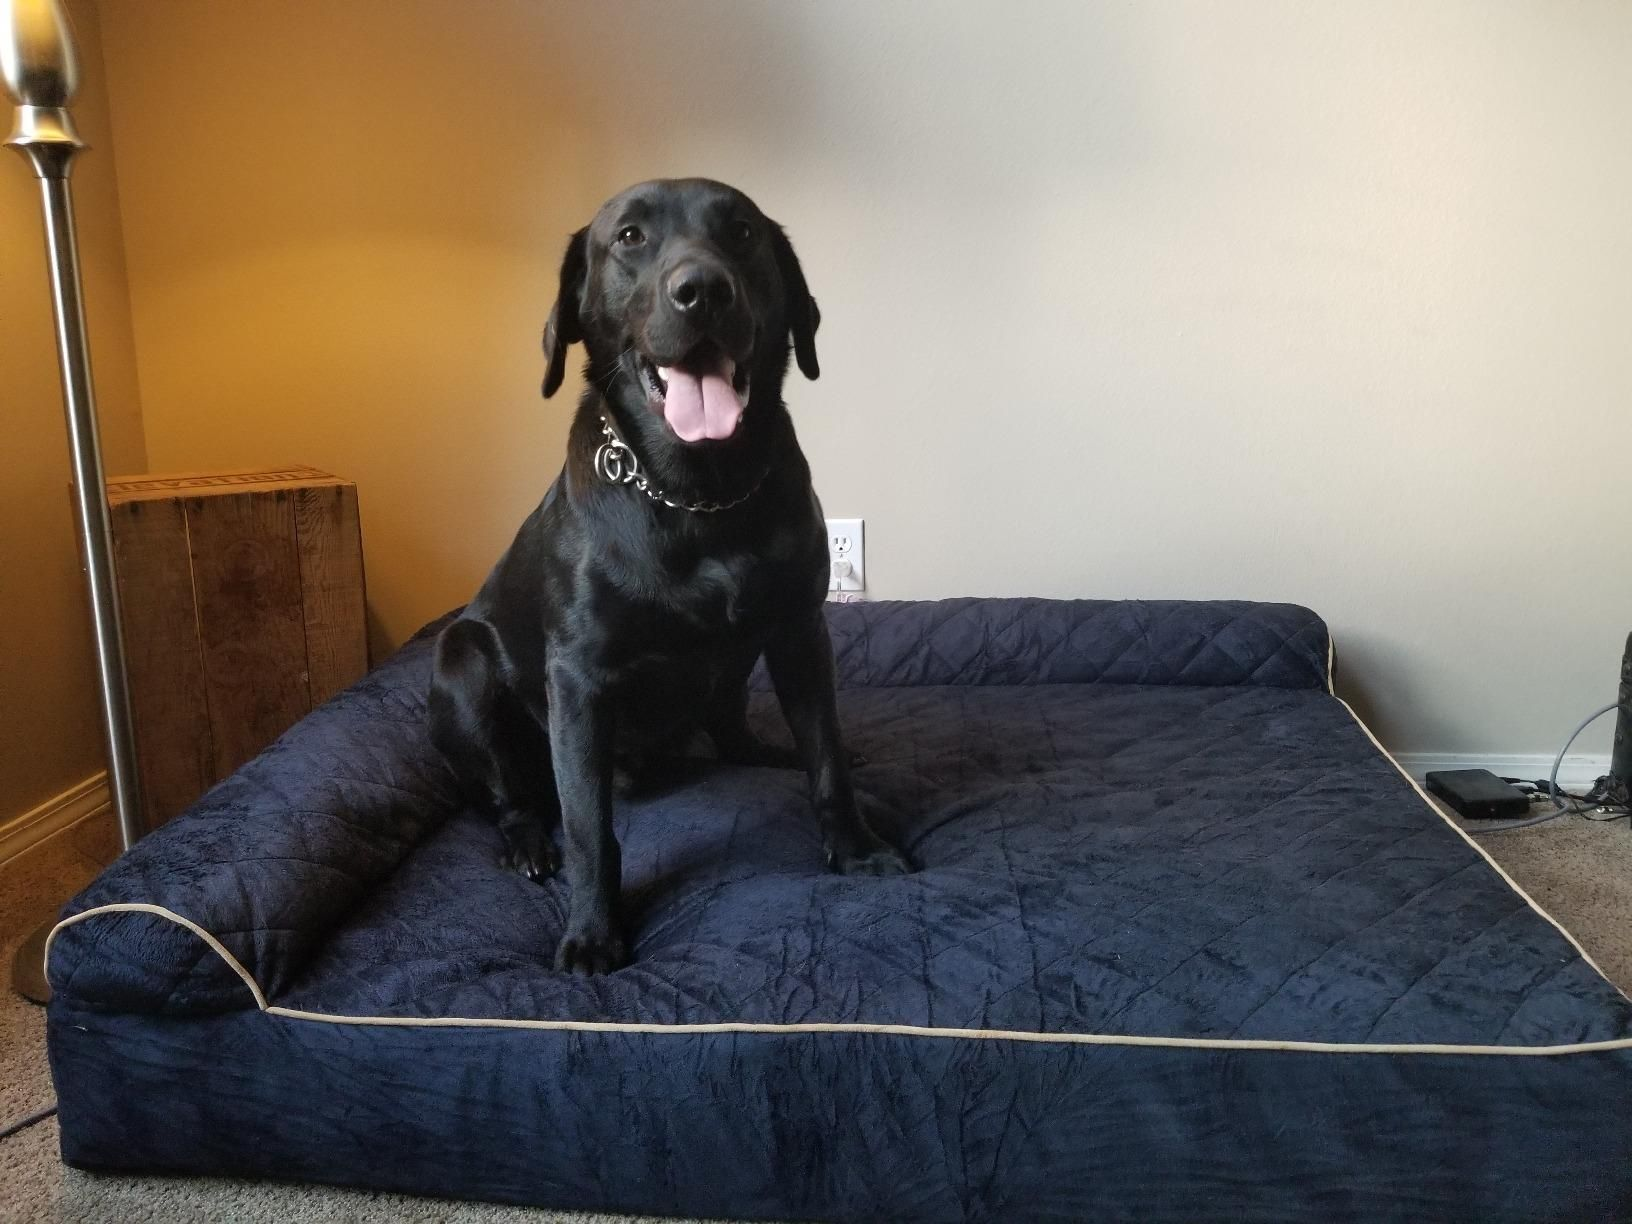 Amazon Com Customer Reviews Furhaven Pet Dog Bed Deluxe Orthopedic Goliath Quilted L Chaise Couch Pet Bed For Dogs Couch Pet Bed Blue Dog Bed